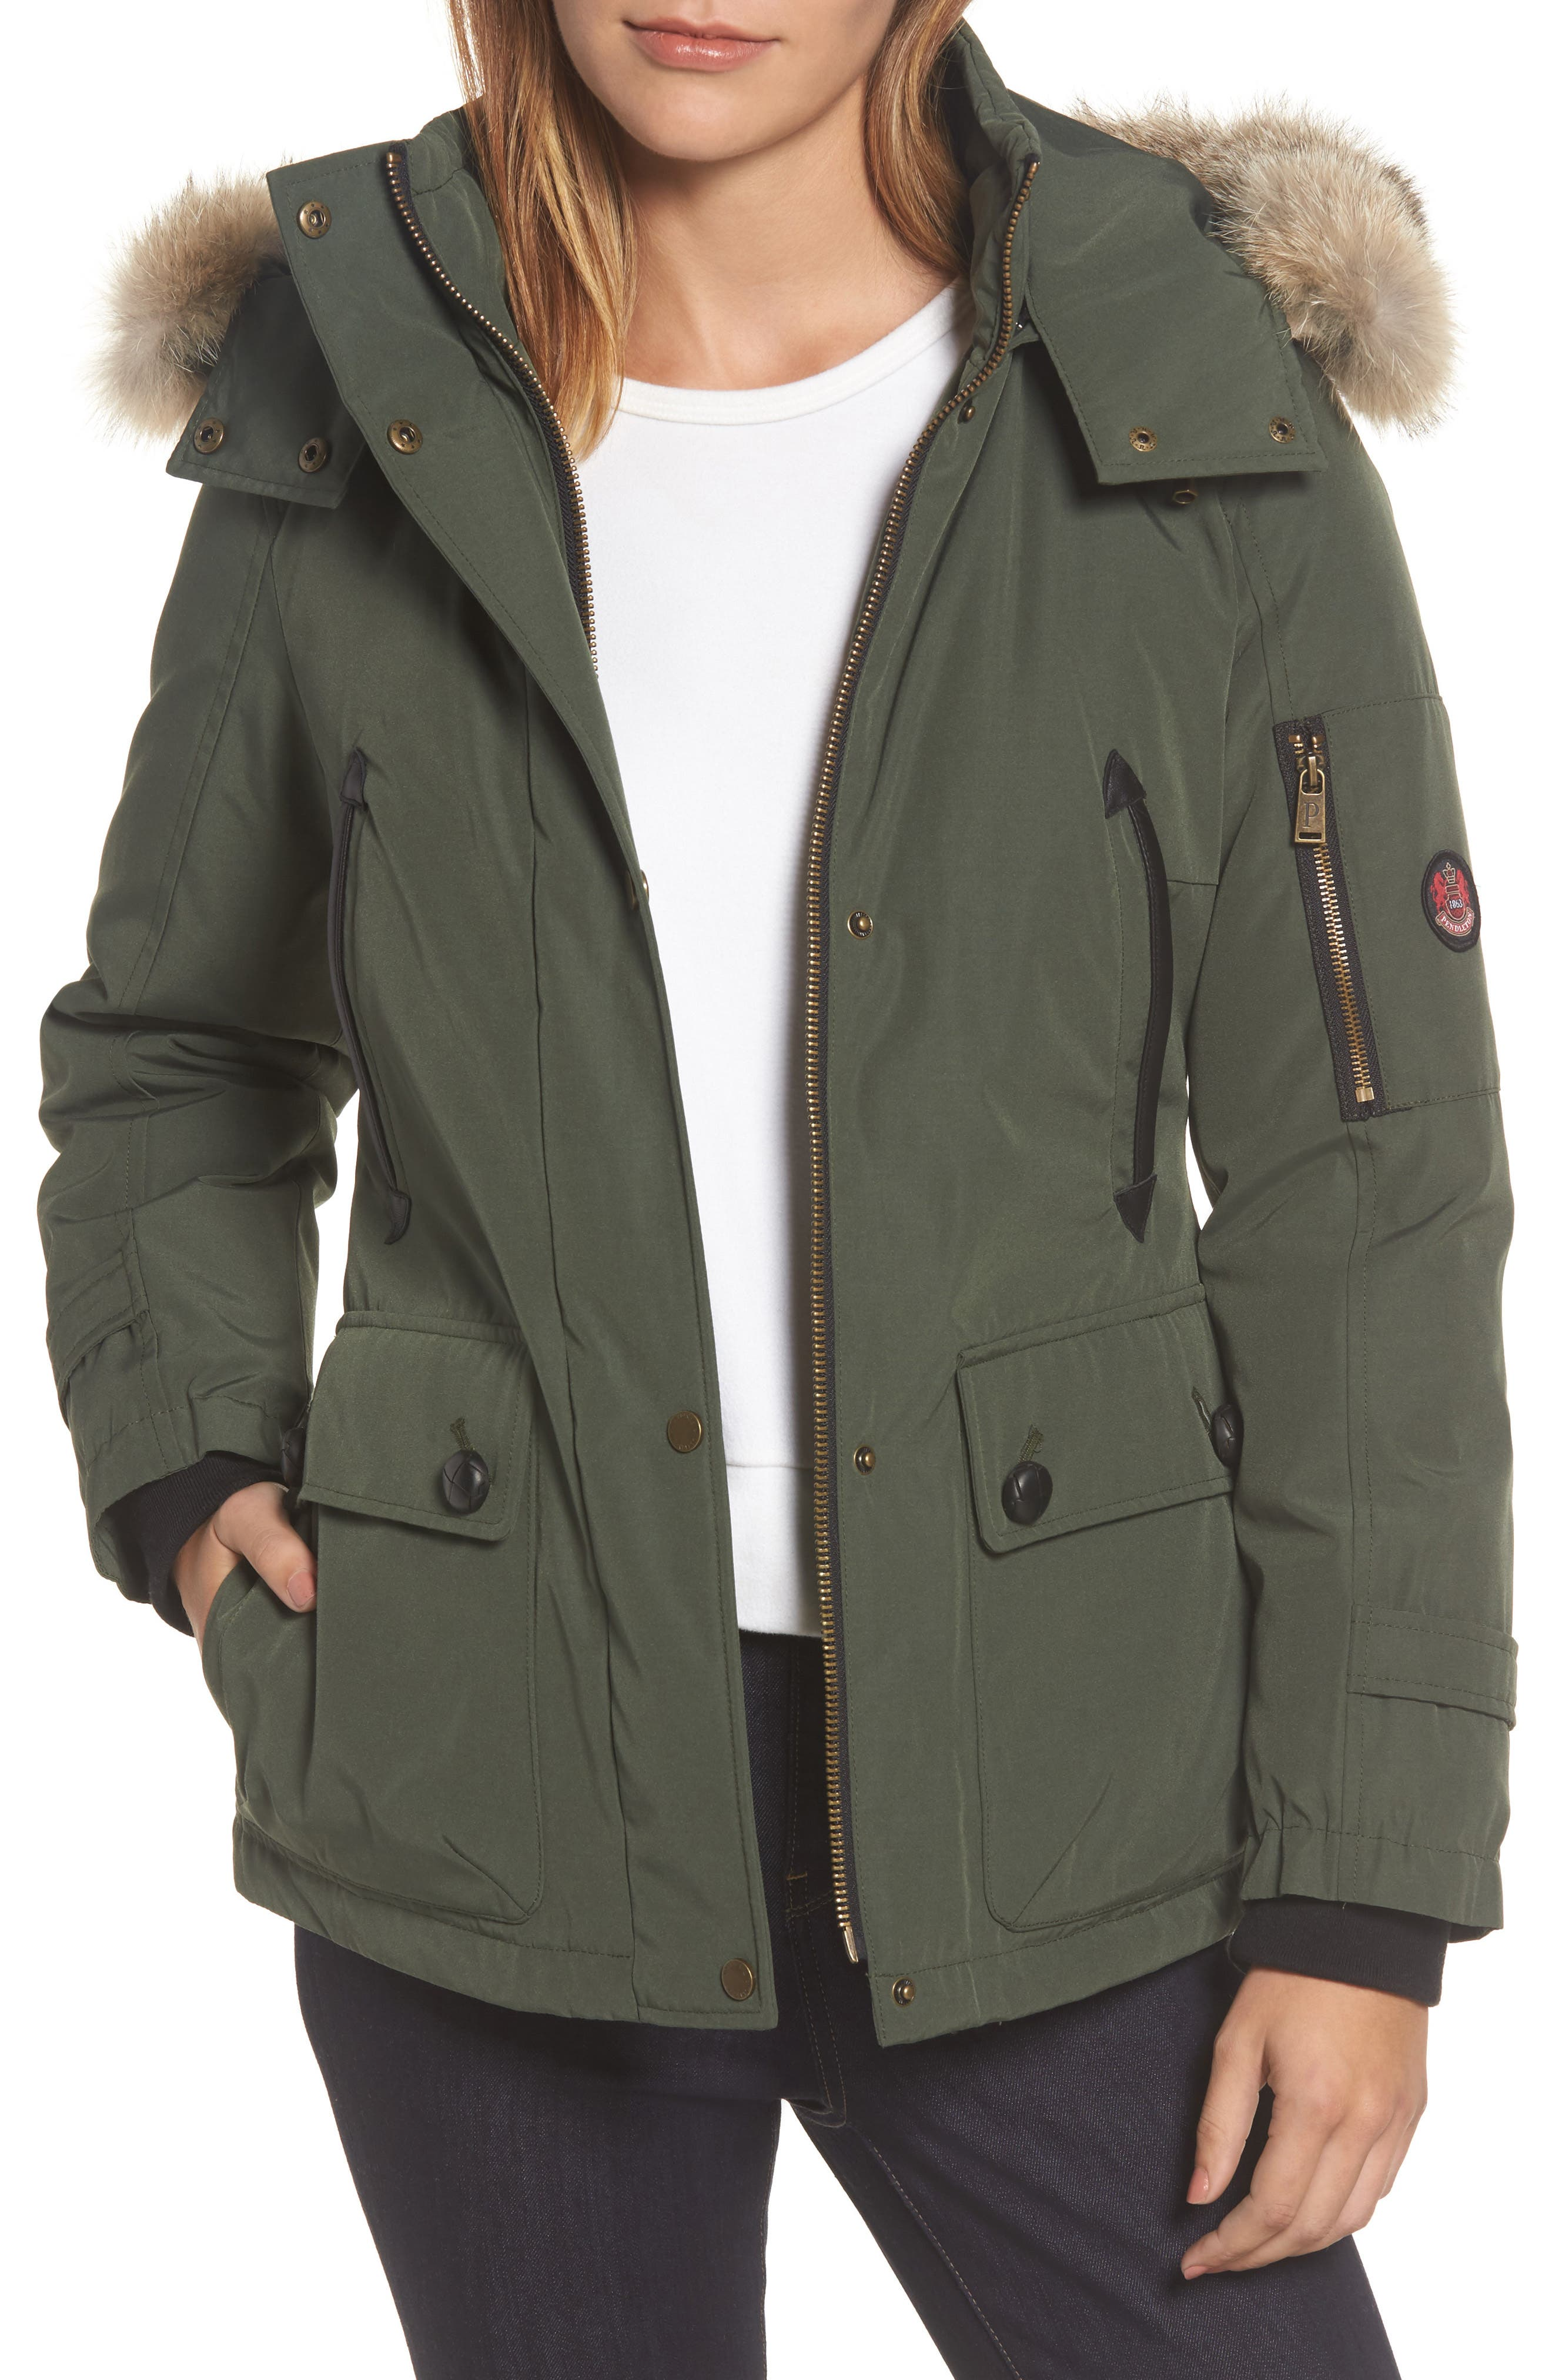 Bachelor Water Repellent Hooded Down Parka with Genuine Coyote Fur Trim,                             Main thumbnail 1, color,                             Olive